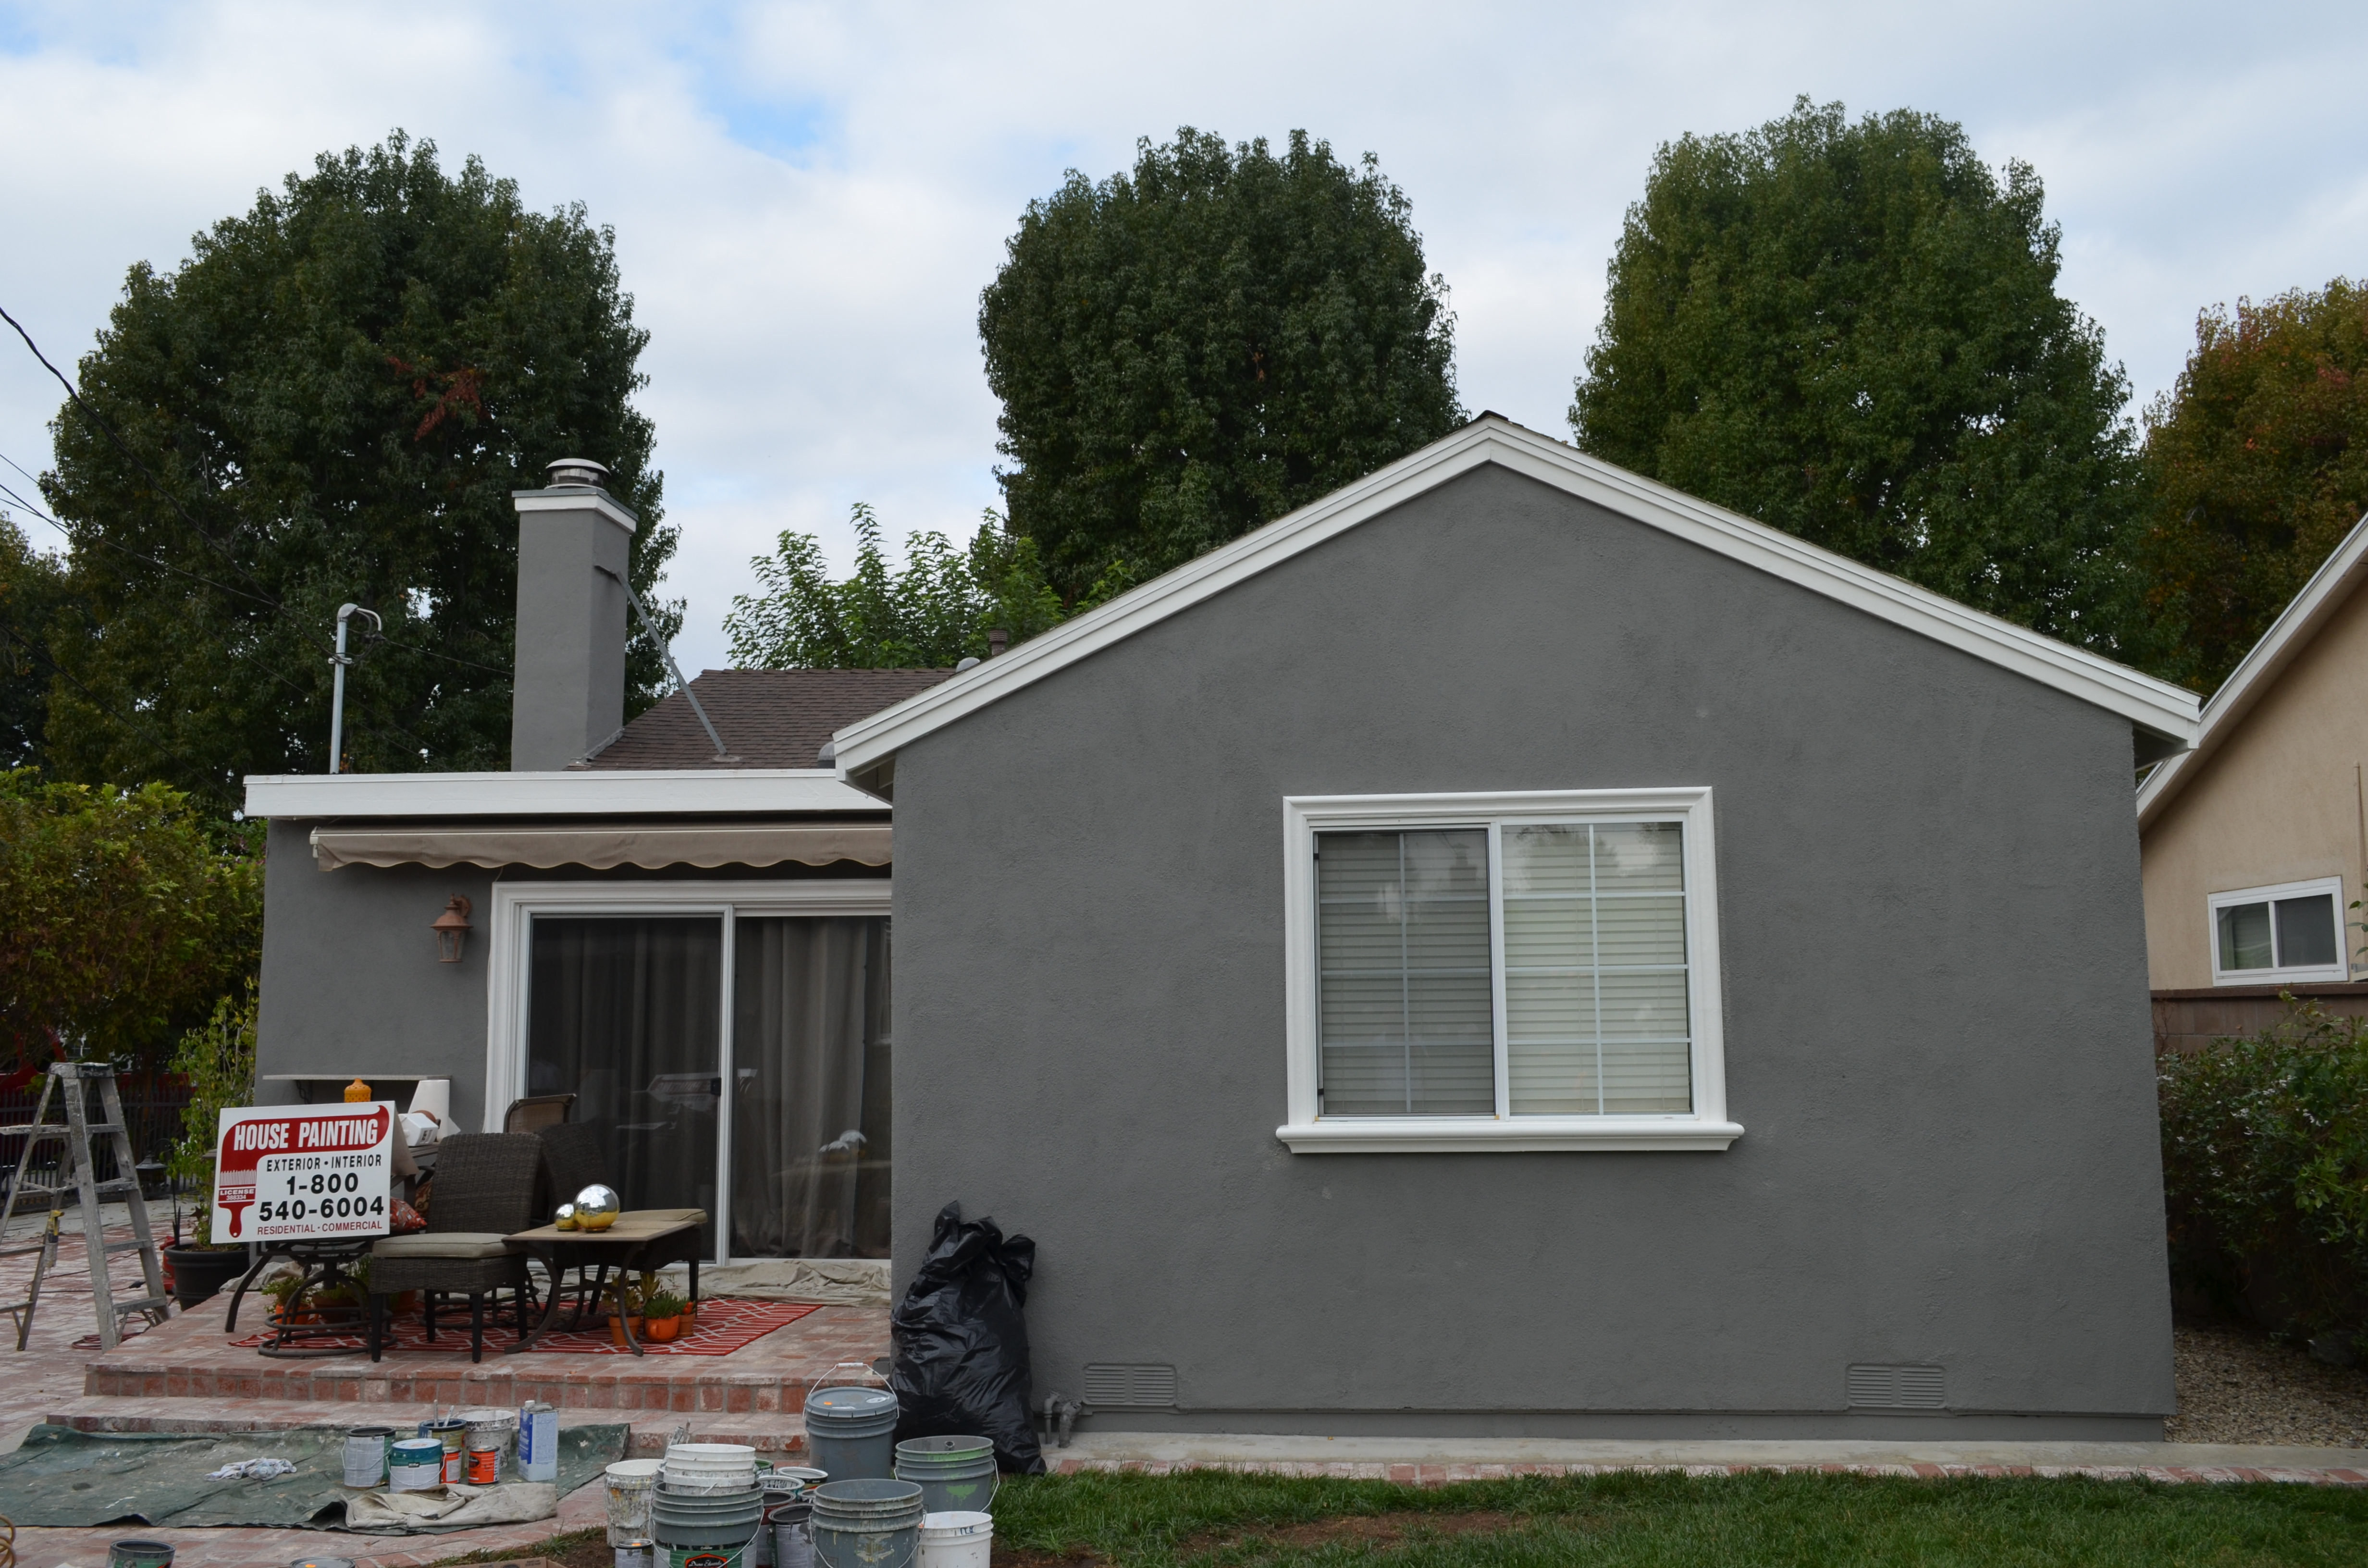 Los Angeles Painting Contractor, House Painting Inc., successfully completed an exterior residential painting job in Los Angeles 90005.